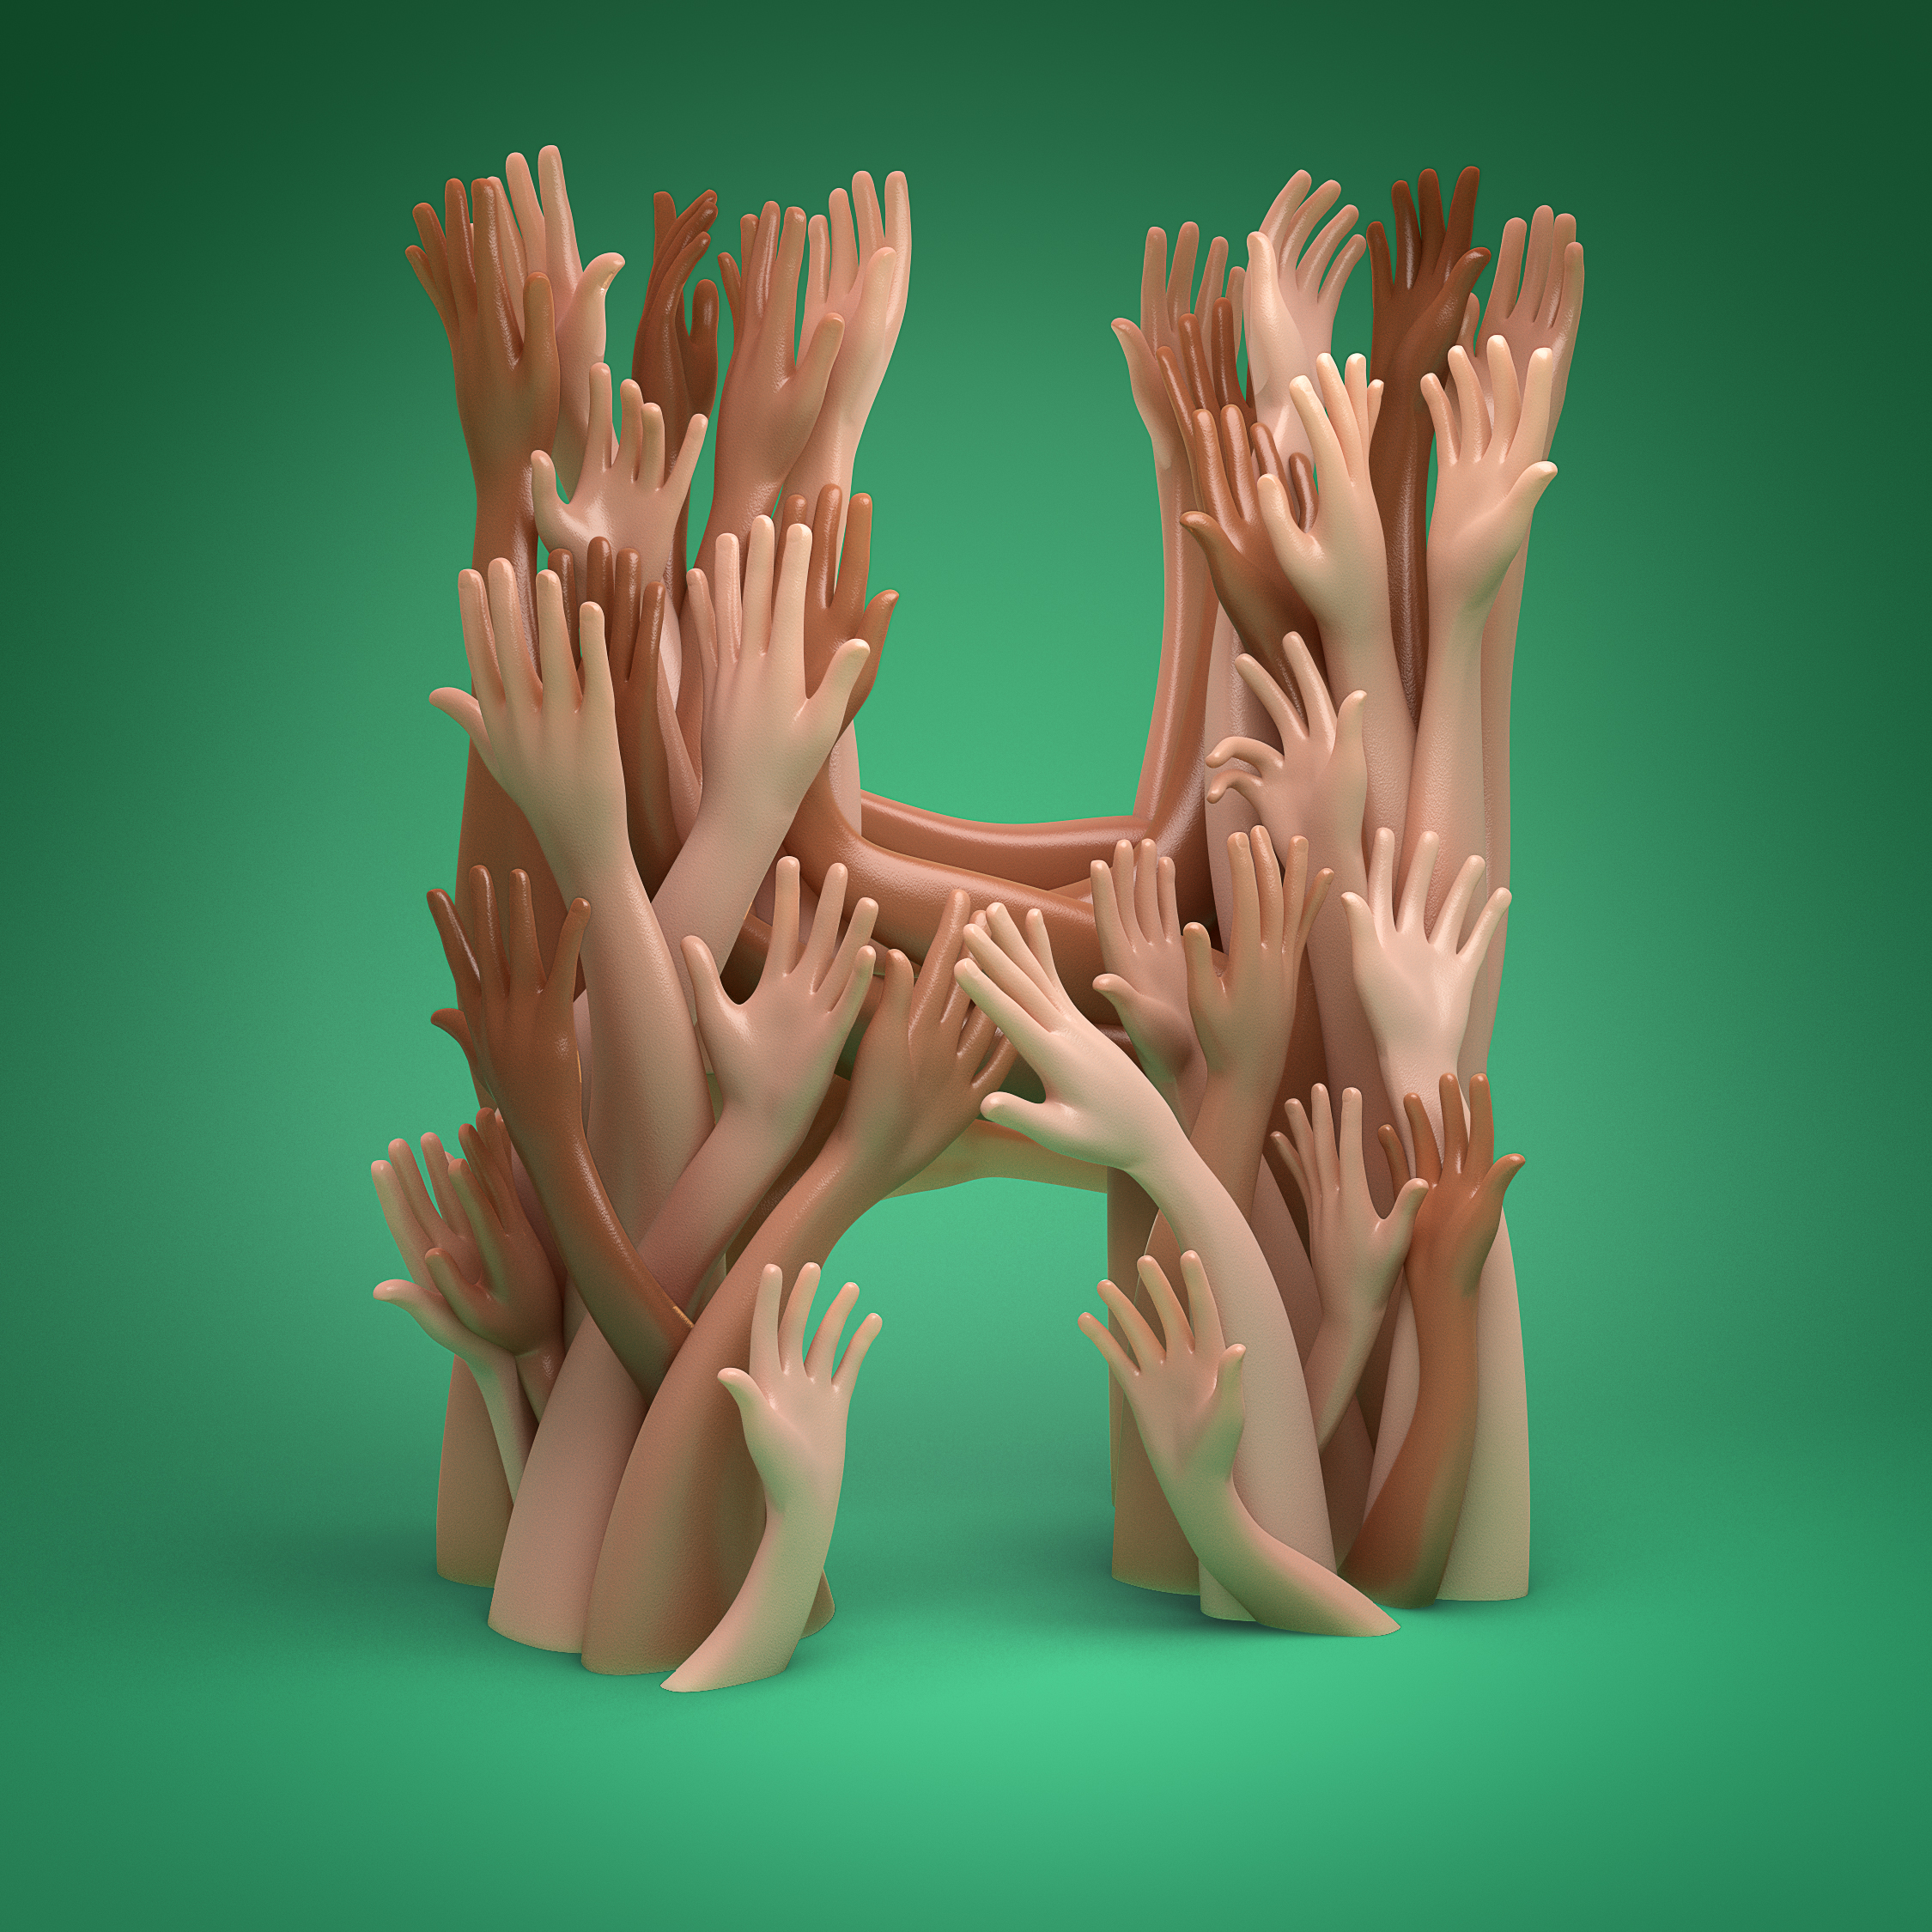 High Five Green 2250x2250.jpg